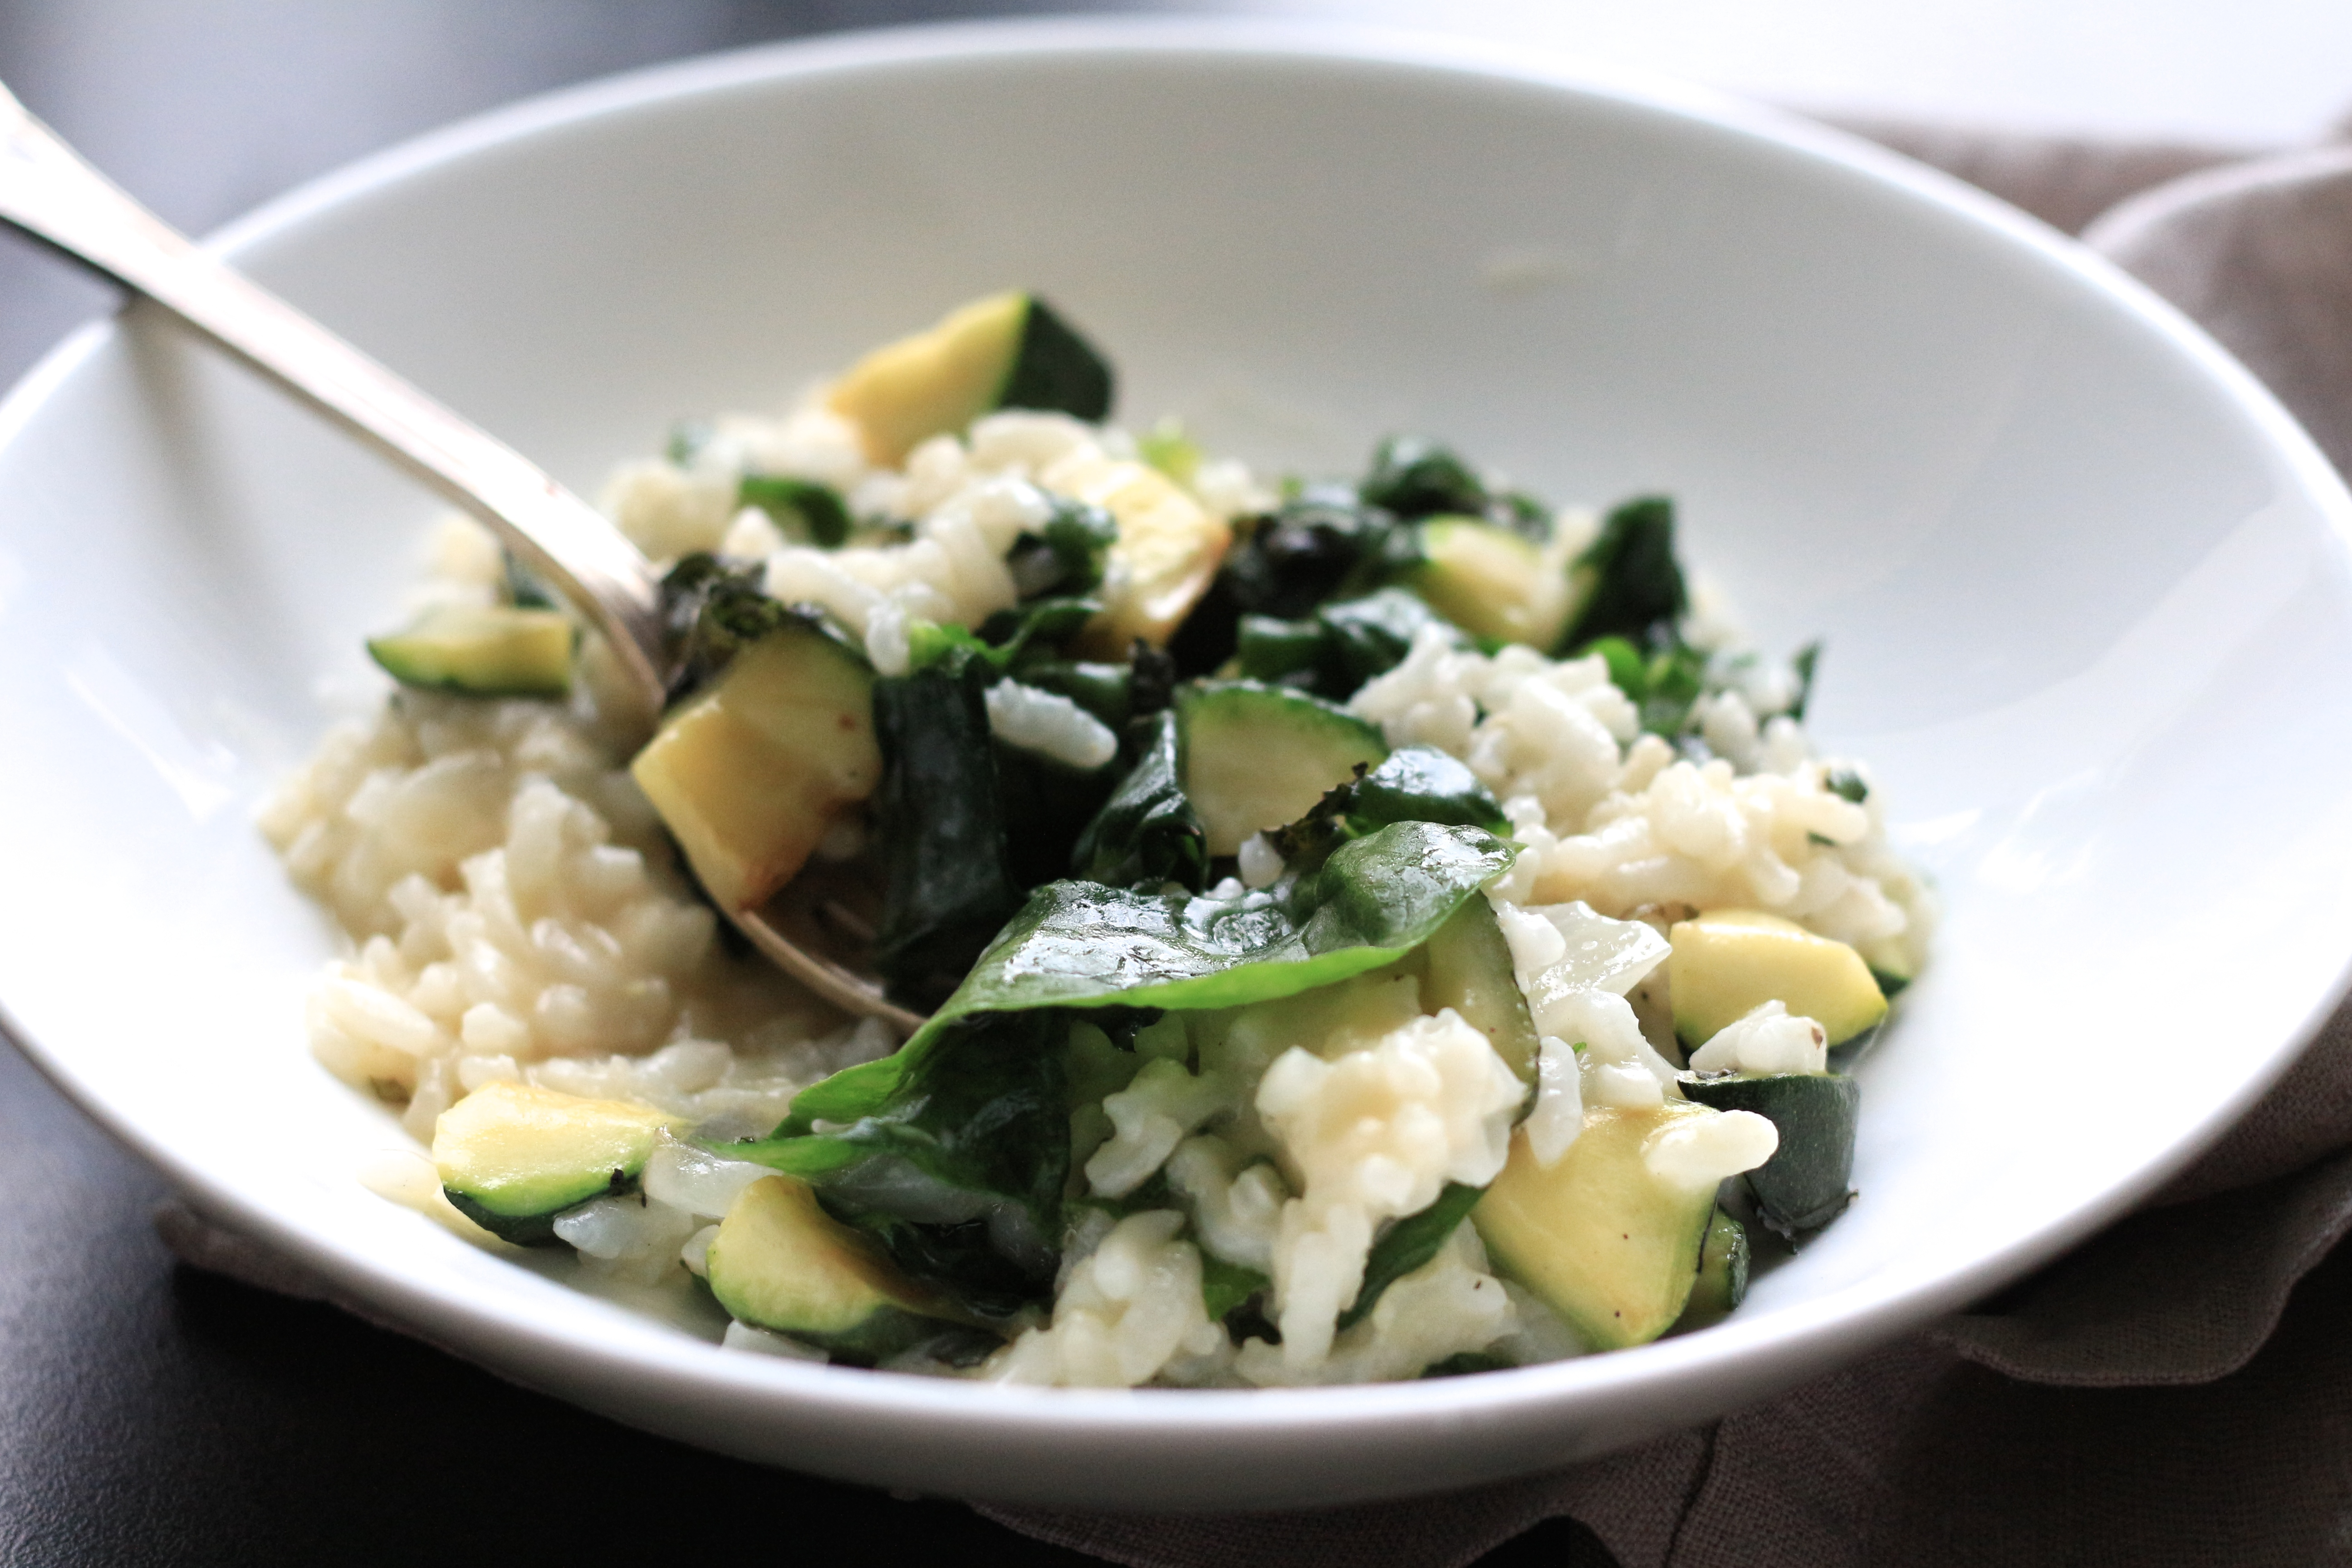 Risotto courgette et menthe / Mint and courgette risotto